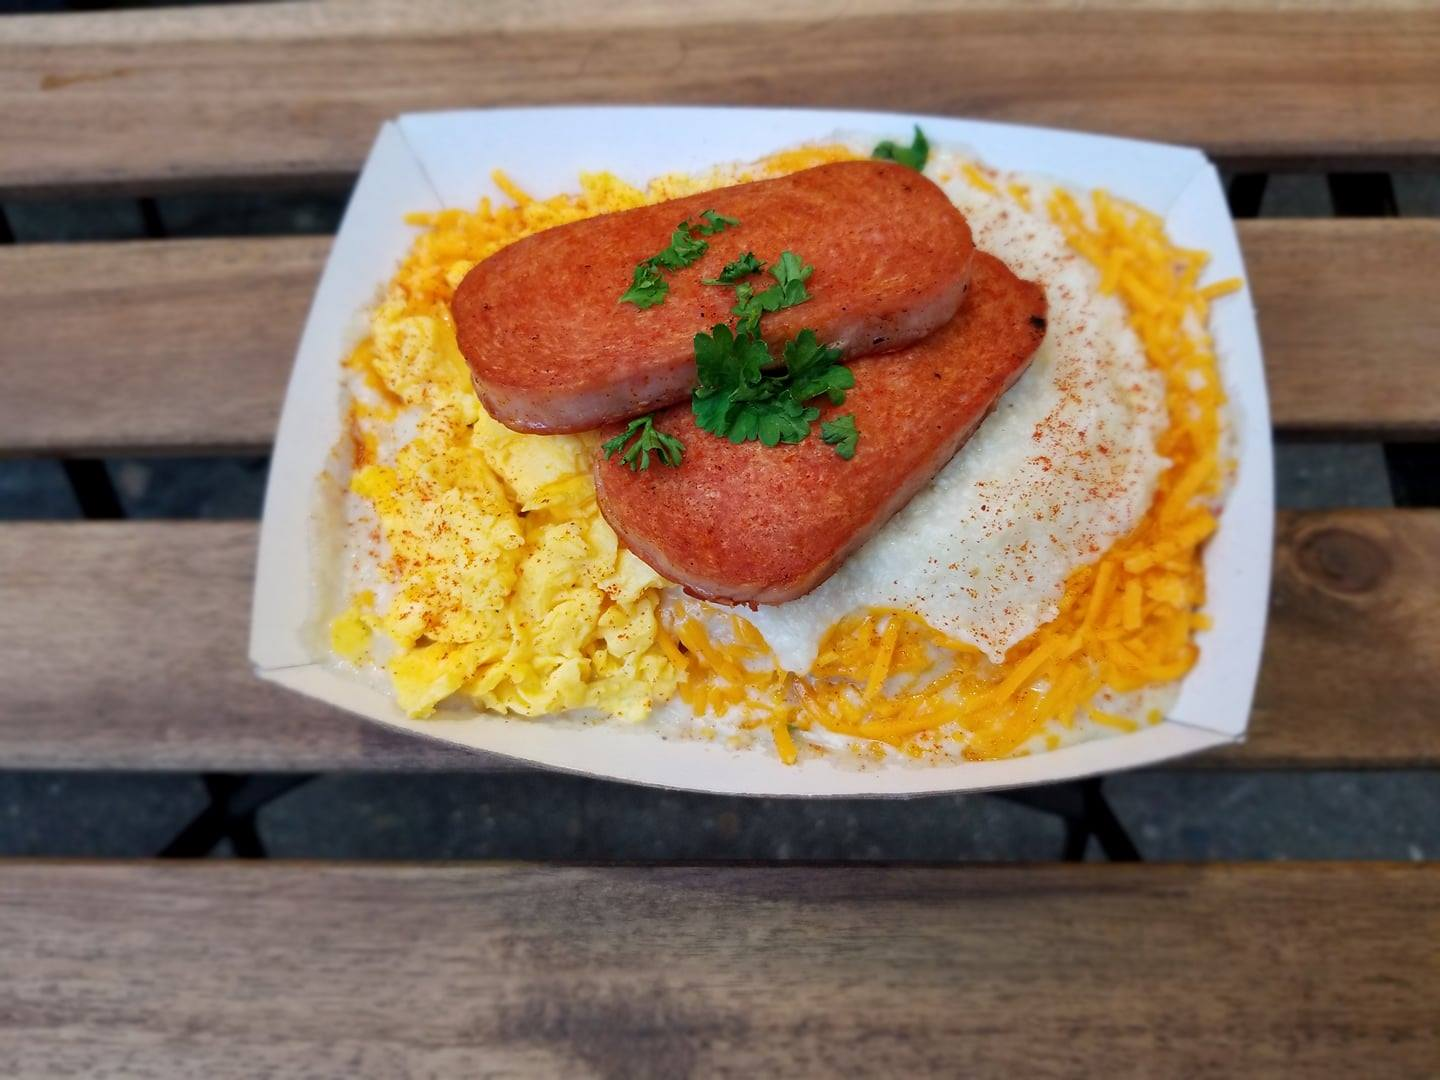 Biscuit Bitch's Spam, eggs, and cheese dish